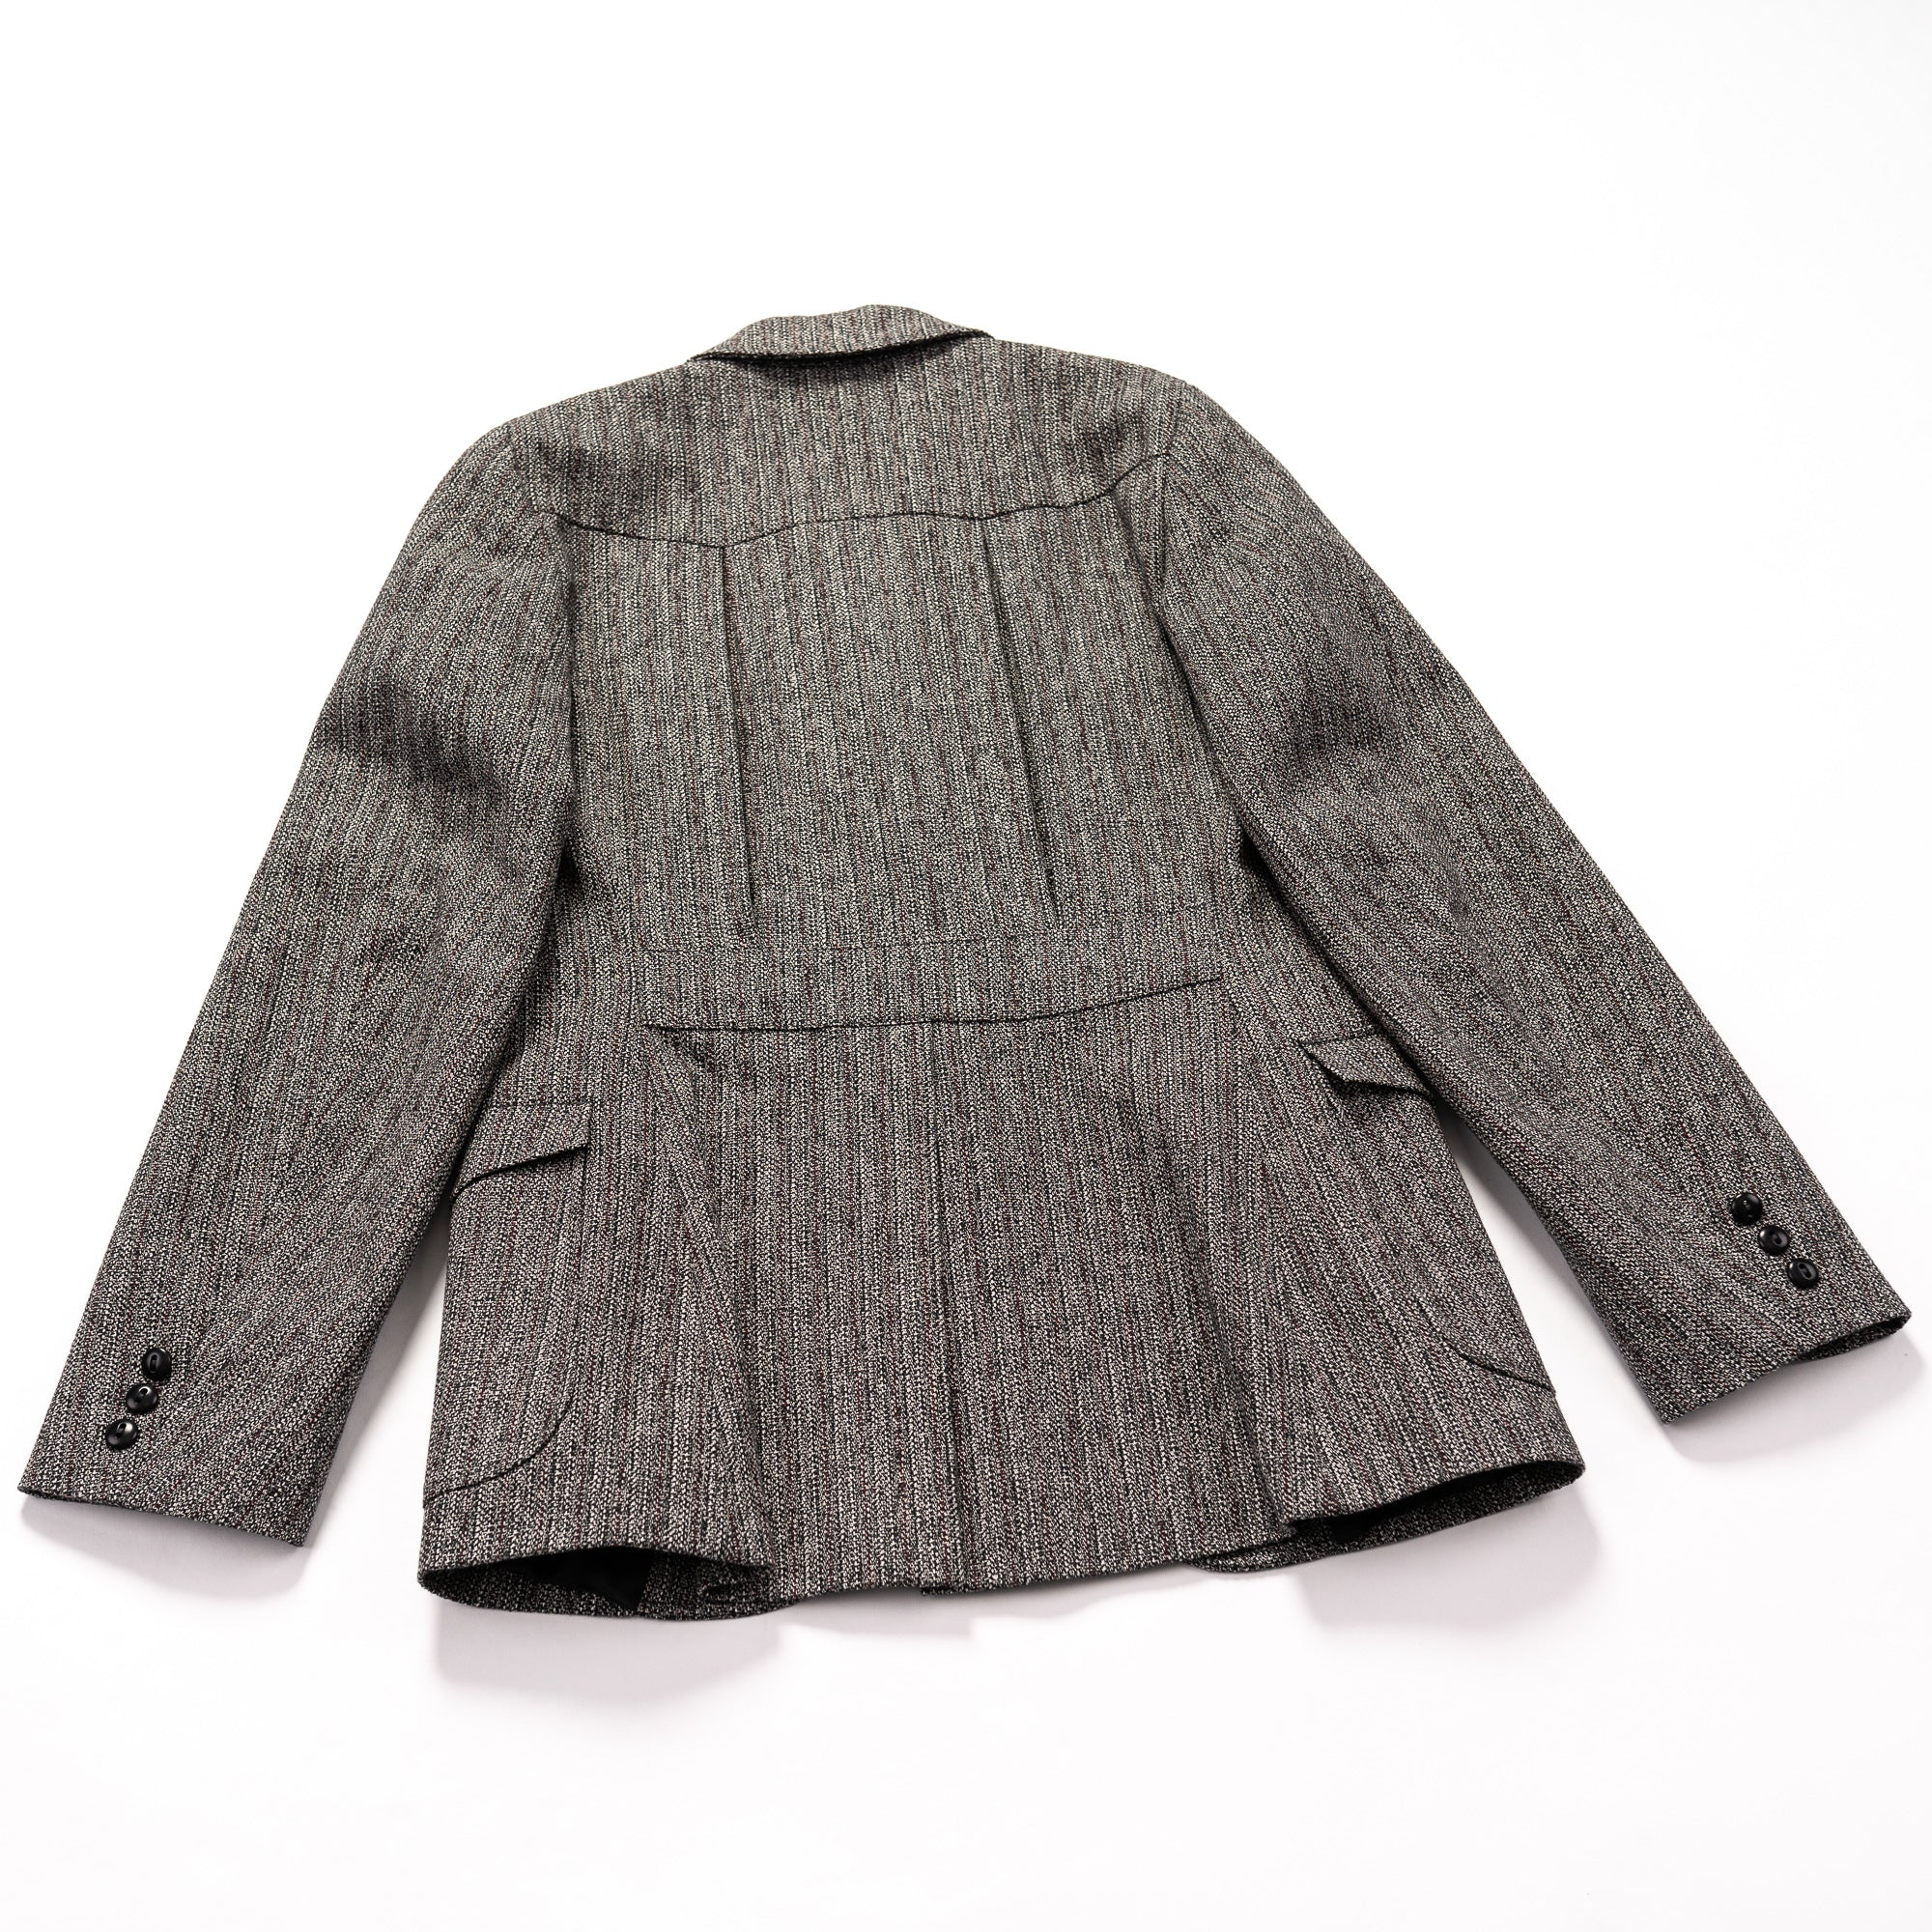 Open-Weave Arkwright Jacket